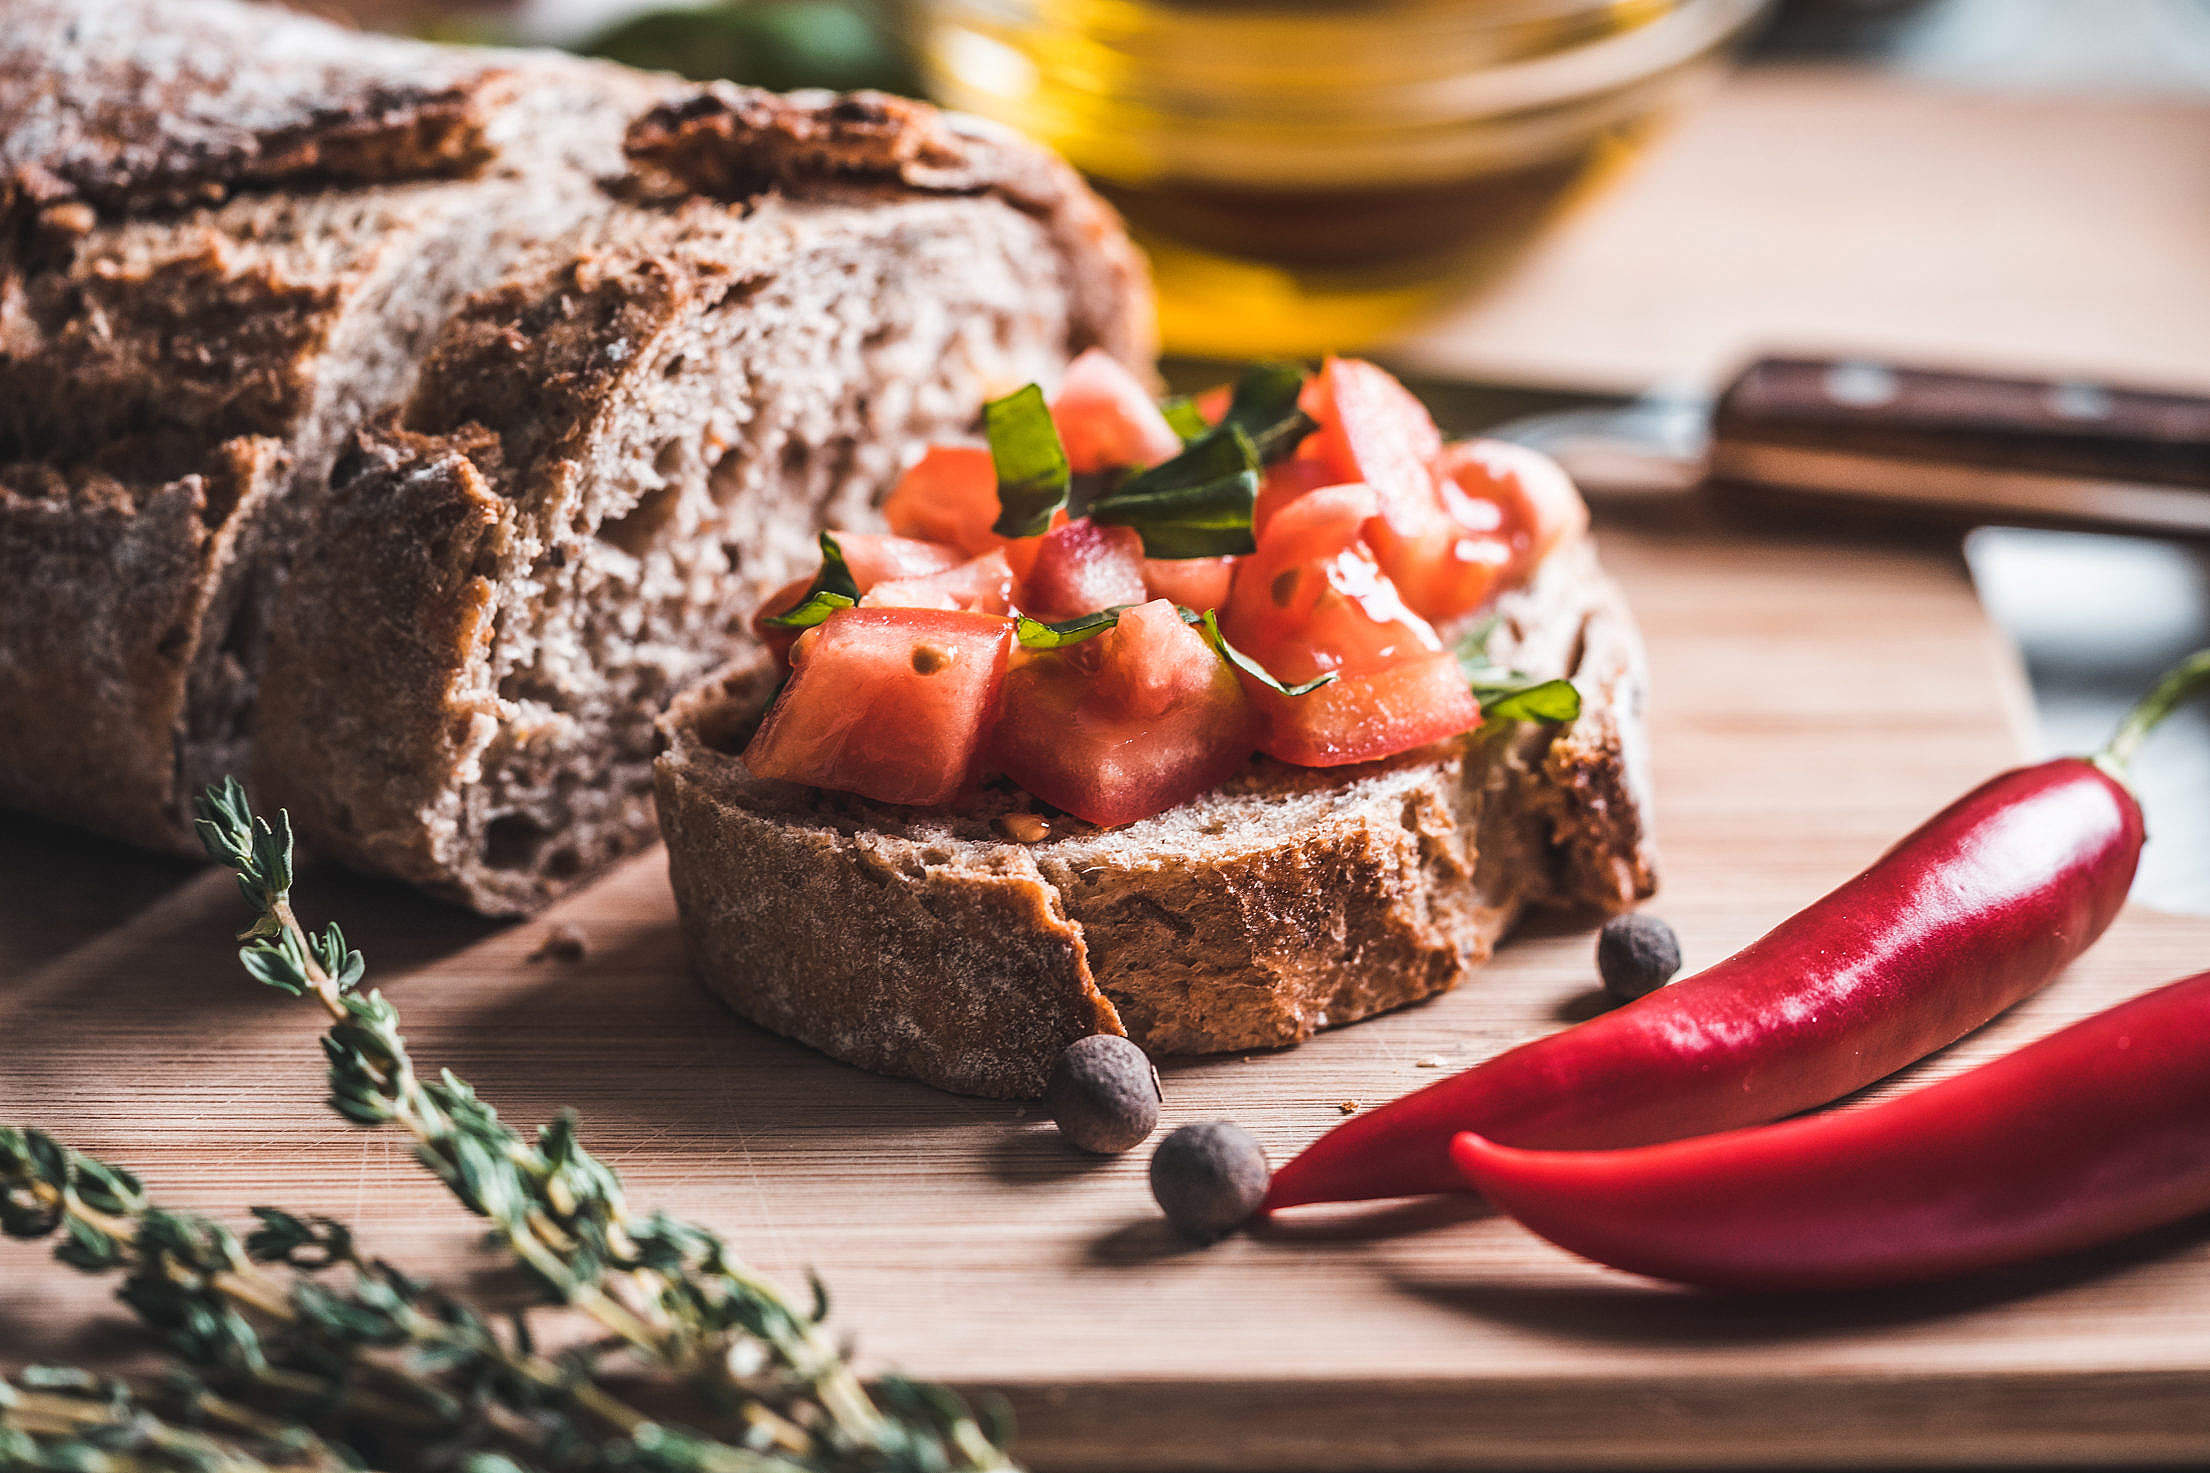 Bread with Tomatoes and Basil on The Chopping Board Free Stock Photo